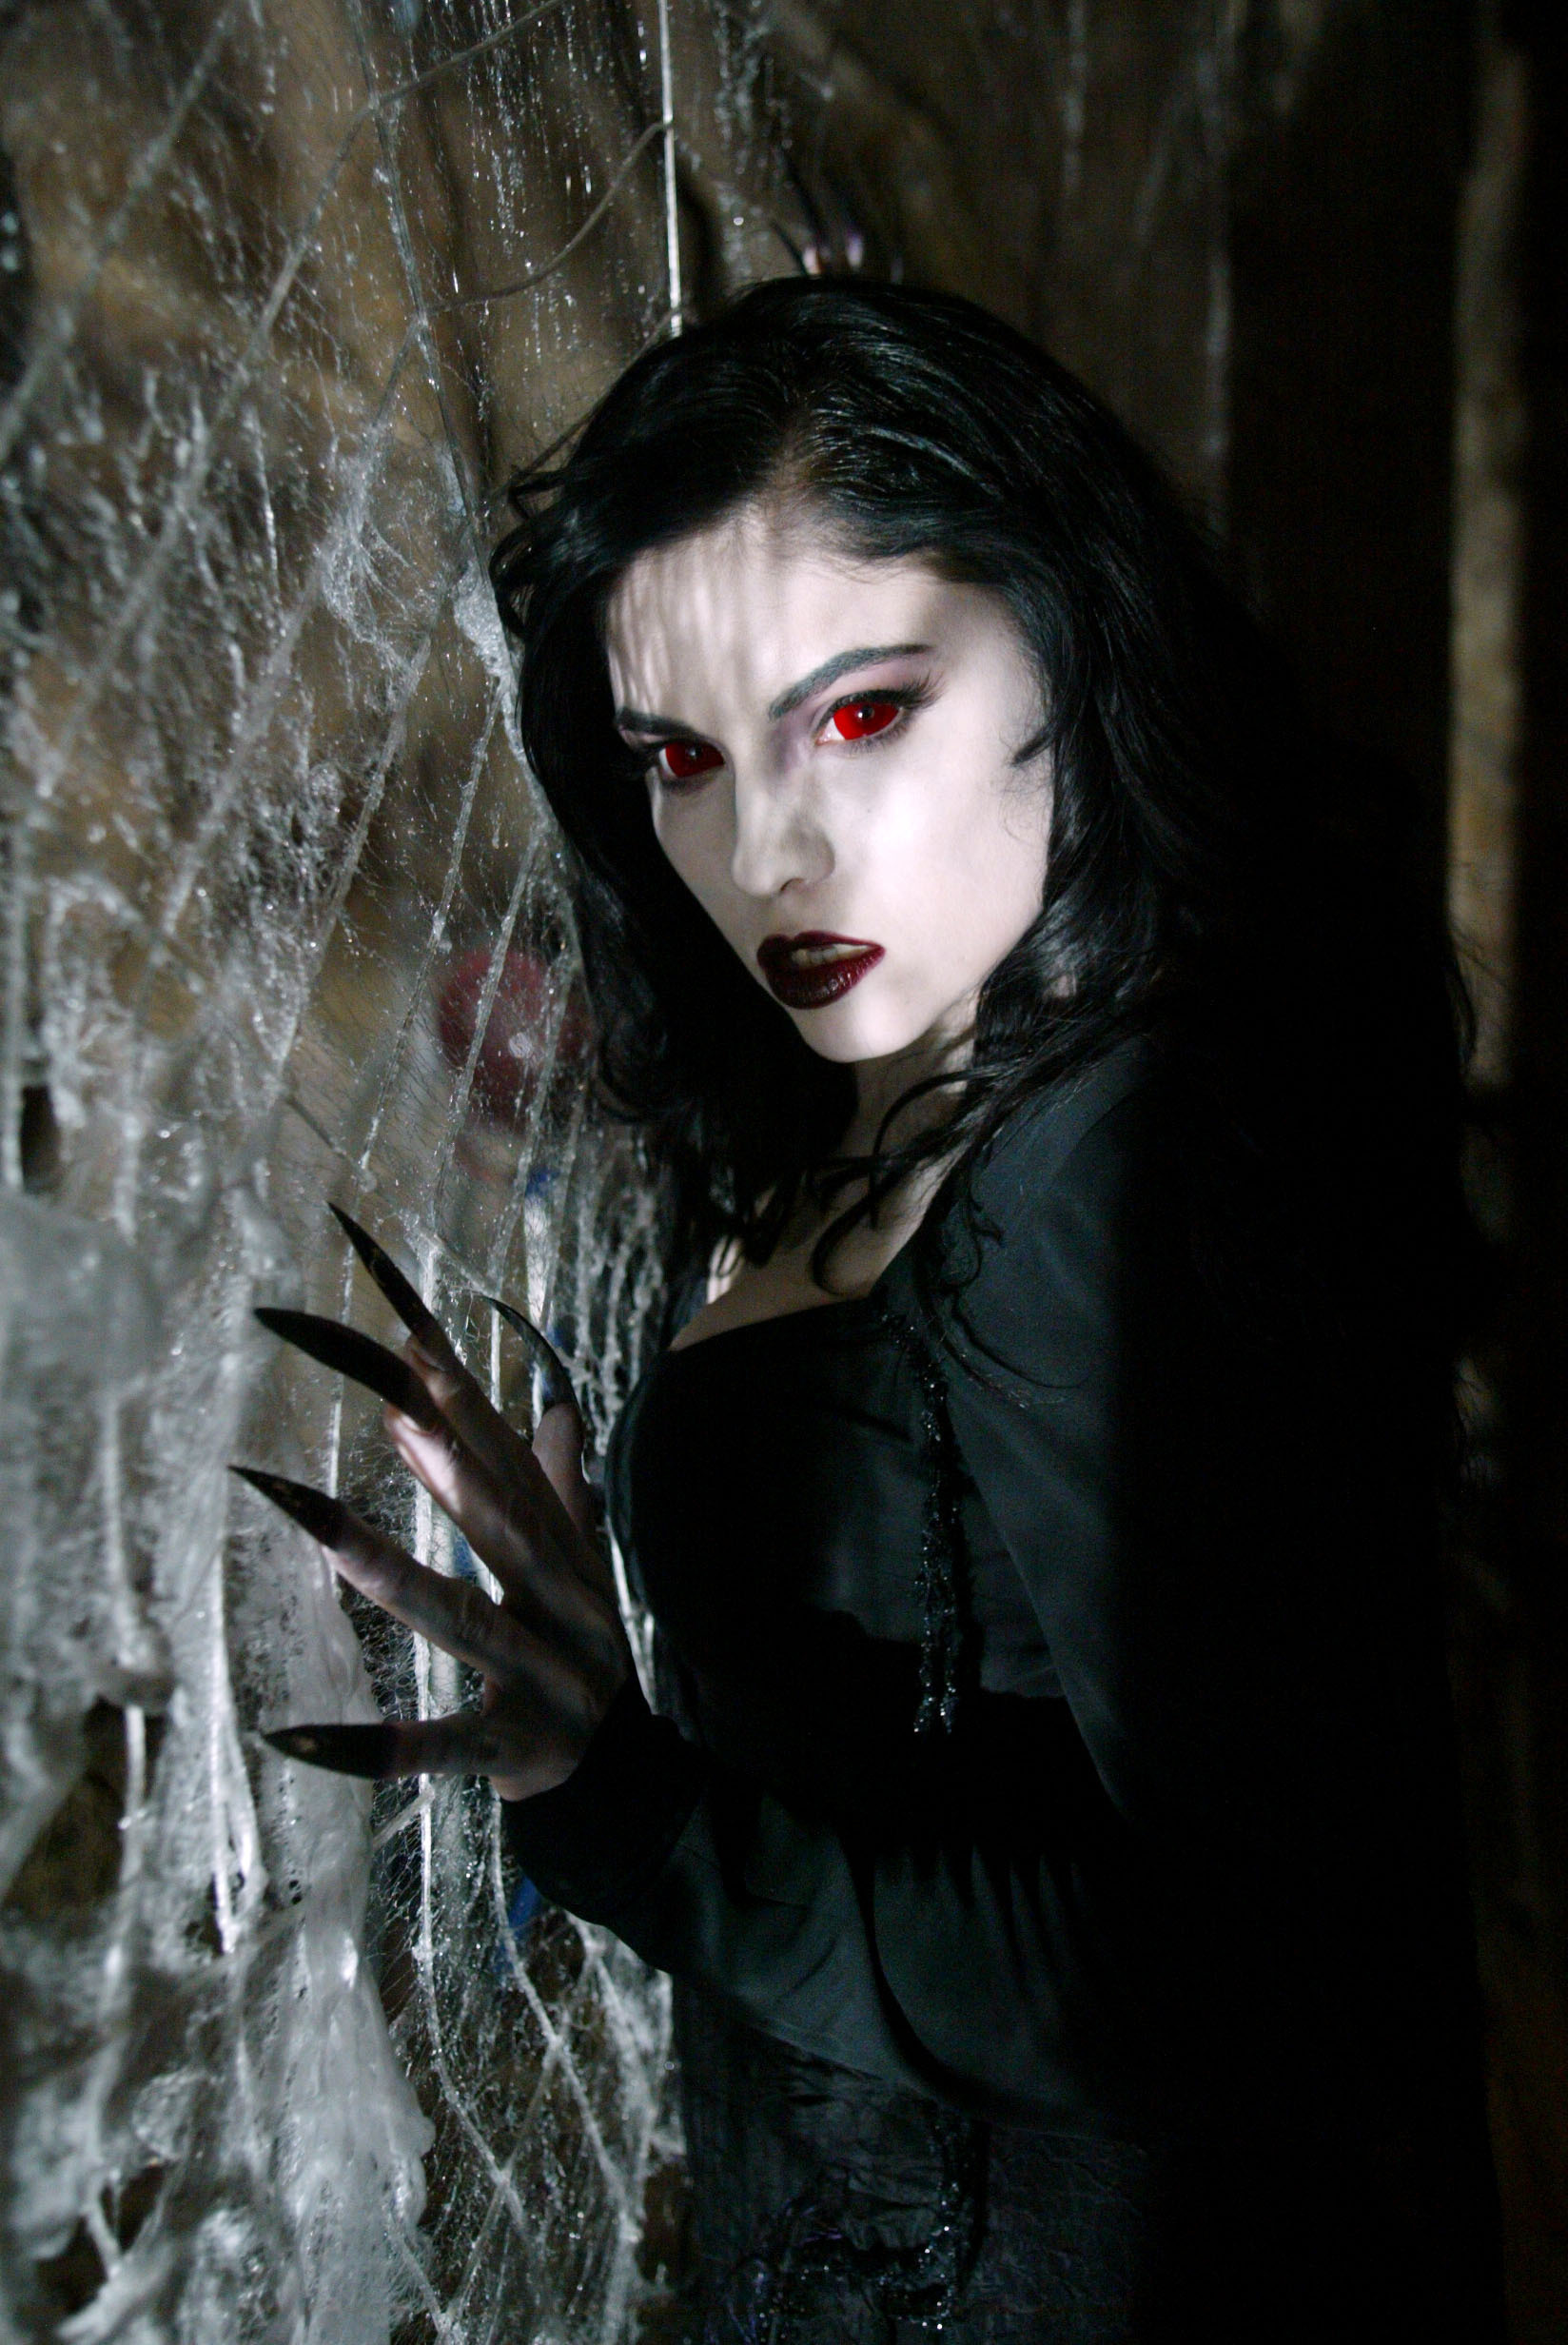 Demons Of Charmed Images Spider Demon Hd Wallpaper And